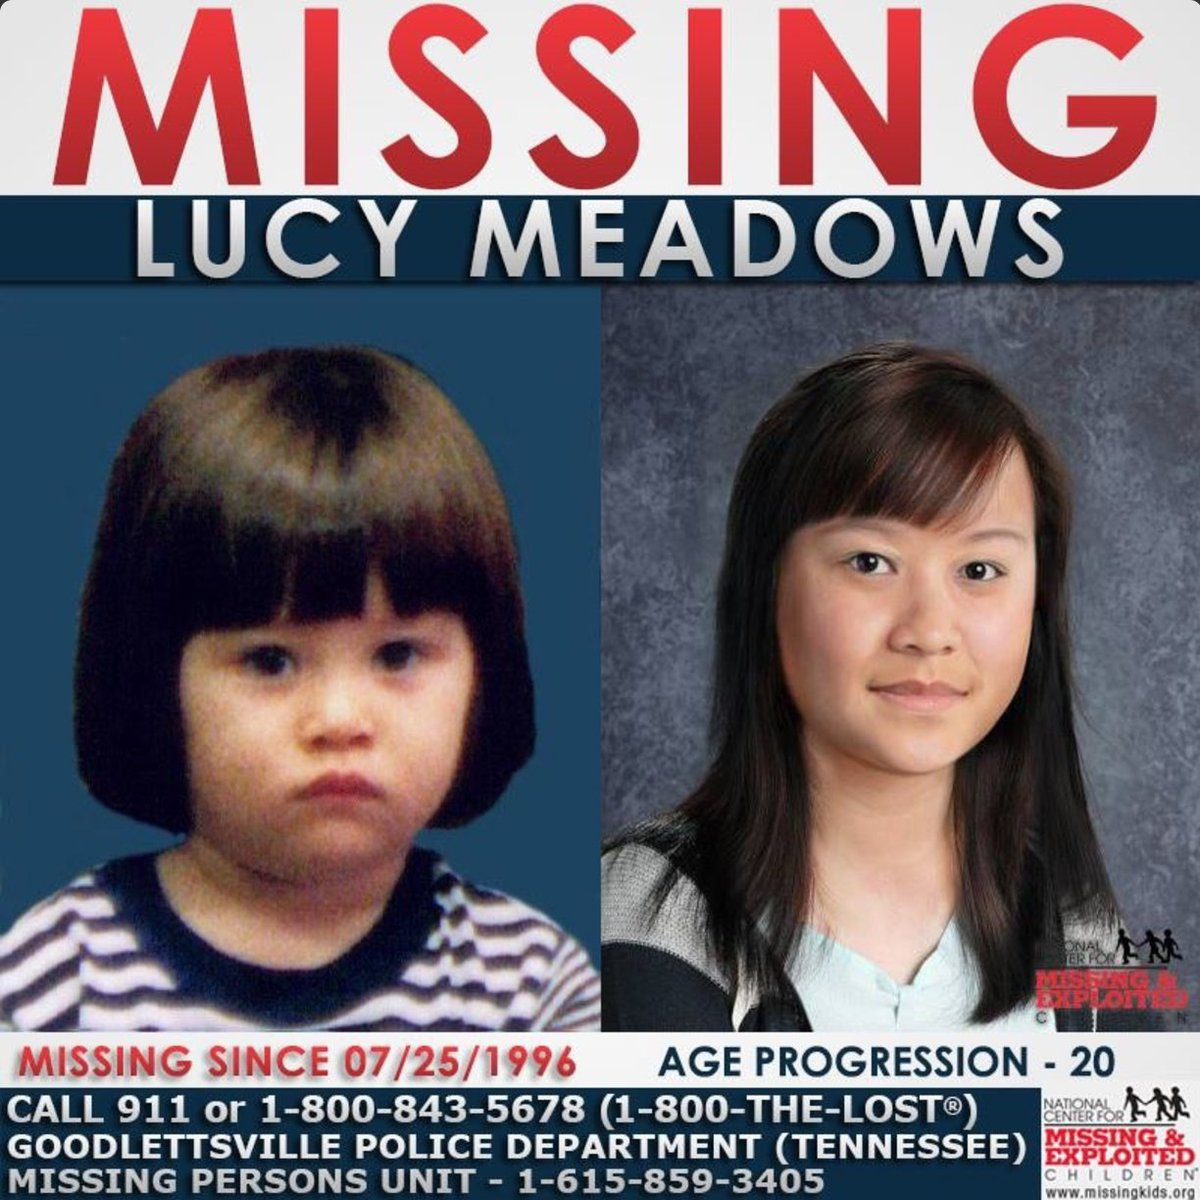 Lucy Meadows has been #missing since 1996. She is 24 years old now and was last seen in Goodlettsville, Tennessee. #RockOneSock #Missing <br>http://pic.twitter.com/3Av4eREc95